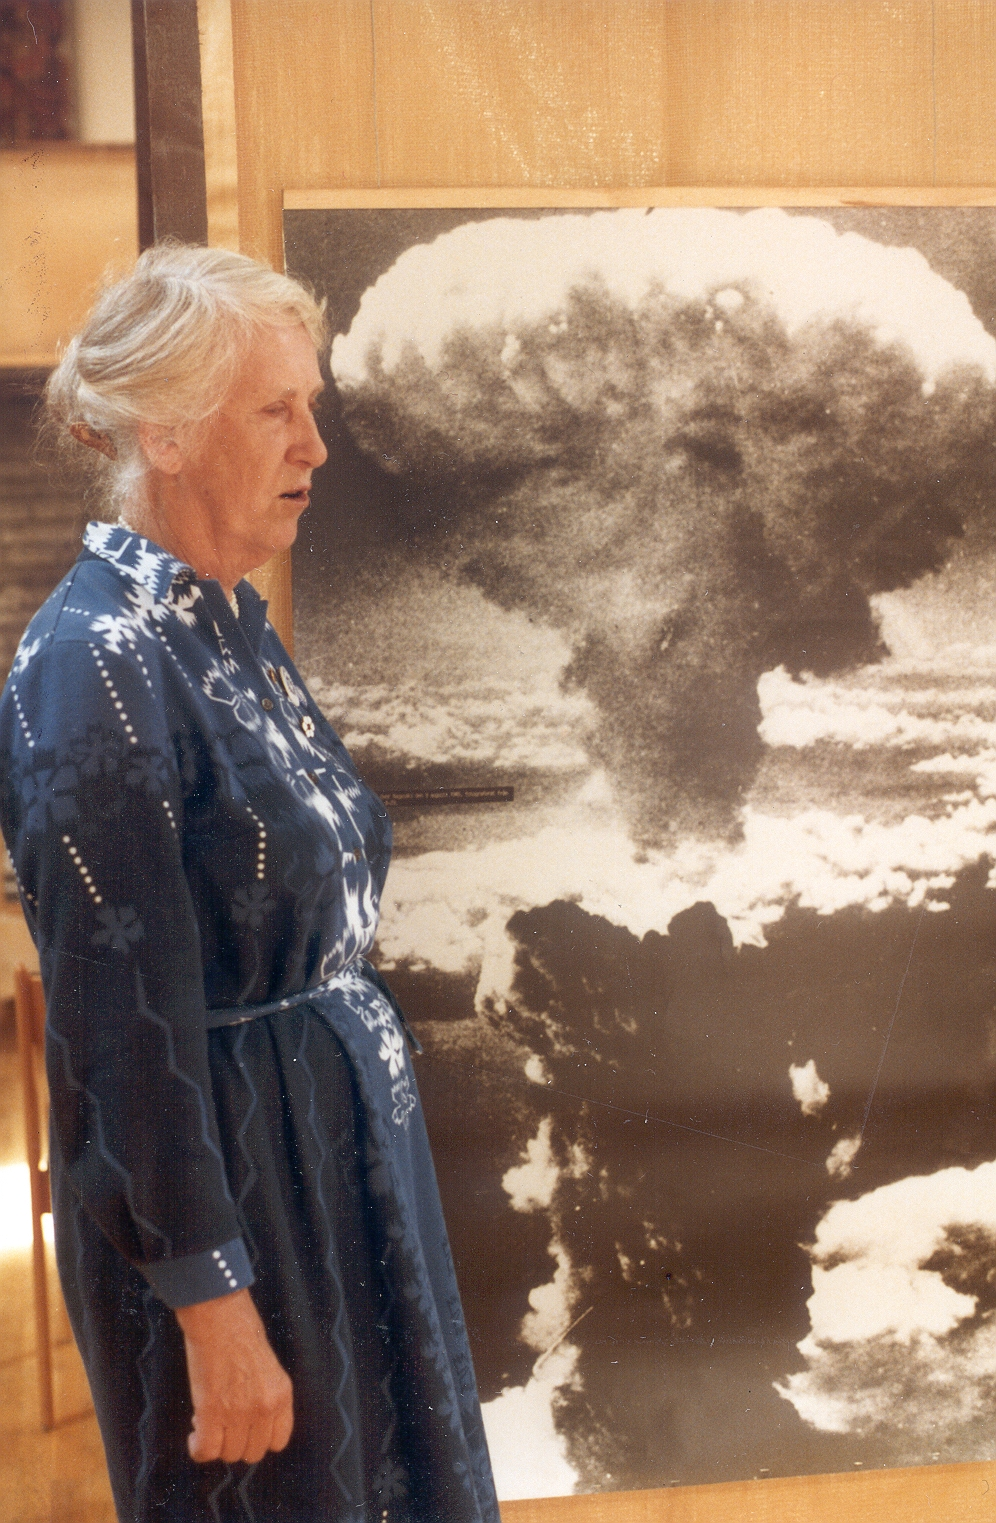 Kerstin Anér in front of an image of a nuclear detonation. Photographer and date unknown (KvinnSam, Gothenburg University Library, B36)